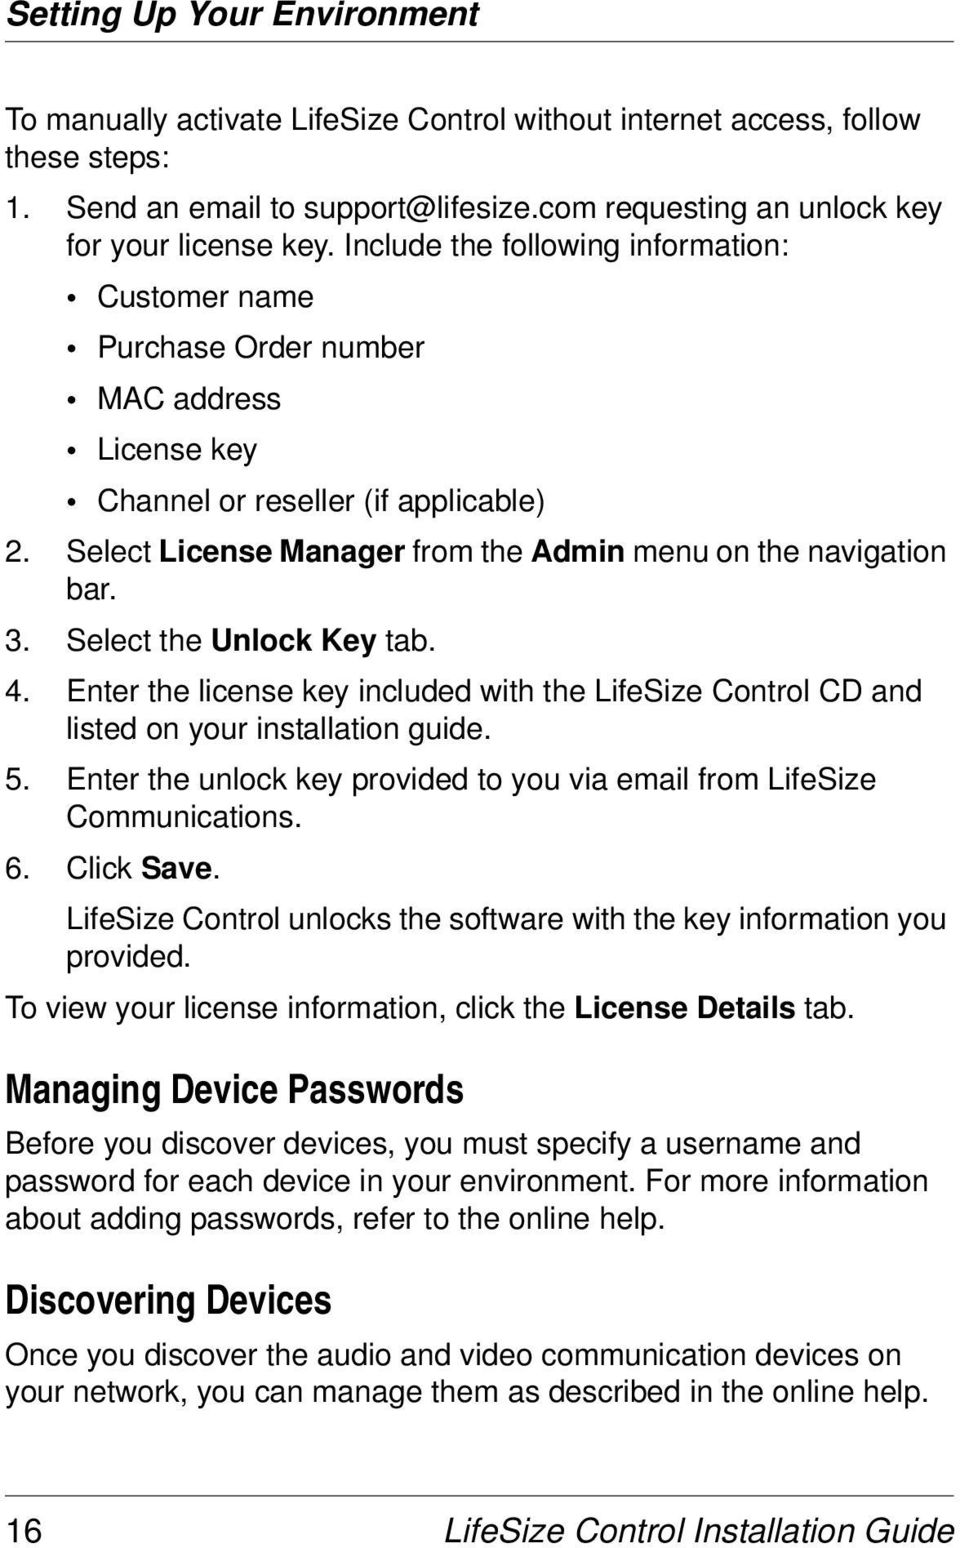 3. Select the Unlock Key tab. 4. Enter the license key included with the LifeSize Control CD and listed on your installation guide. 5.